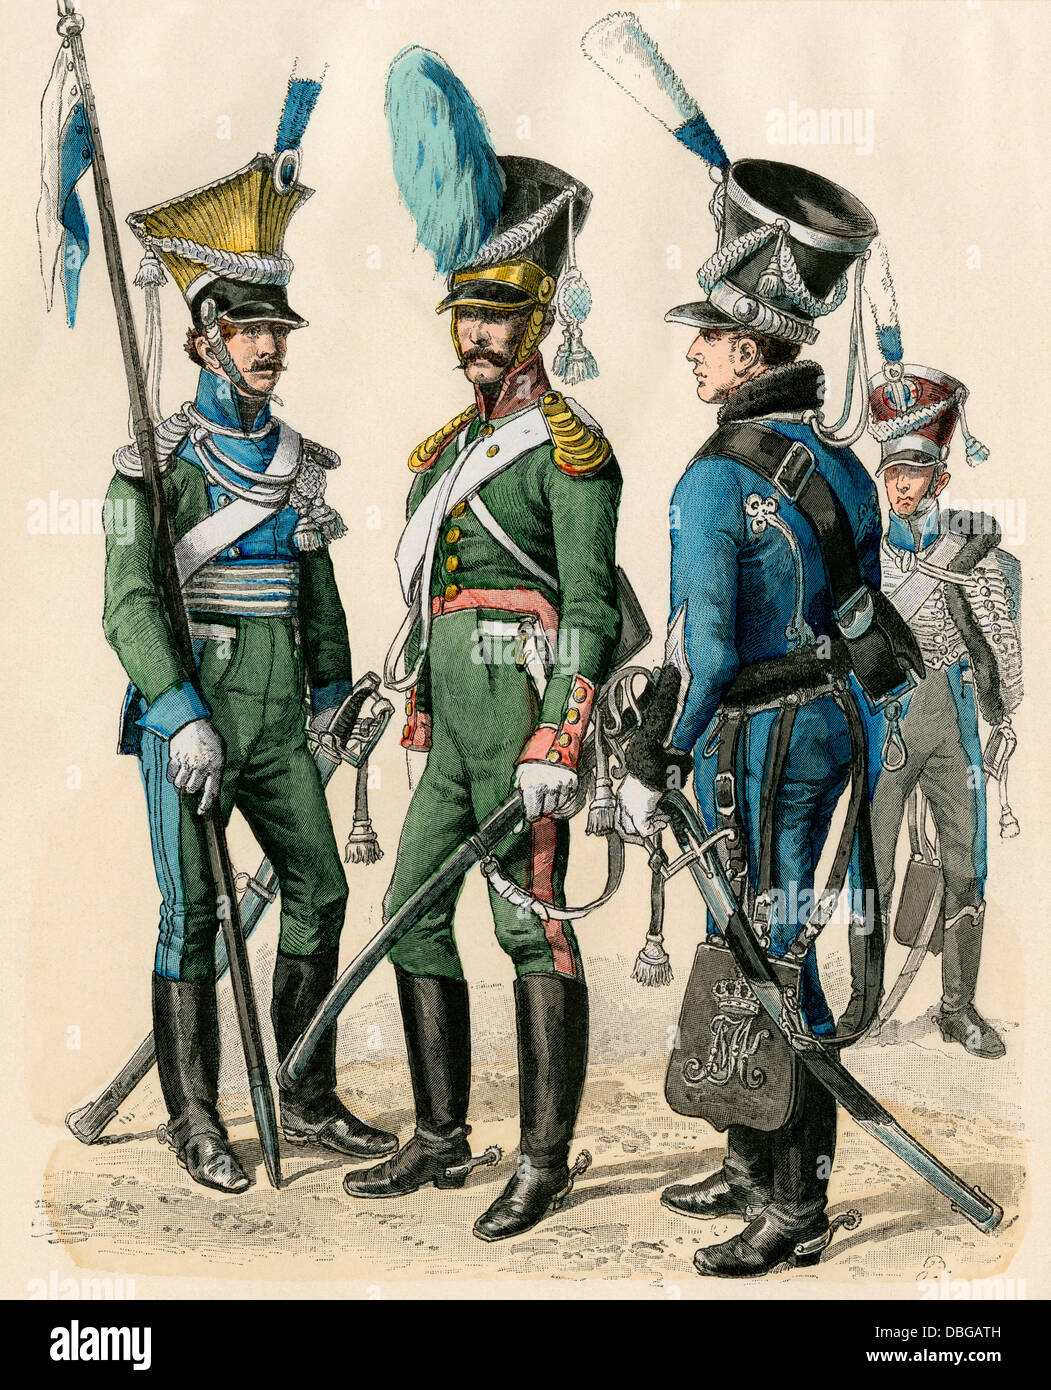 Bavarian military uniforms, early 1800s: lancer, cavalryman, and hussar (left-right). Hand-colored print - Stock Image